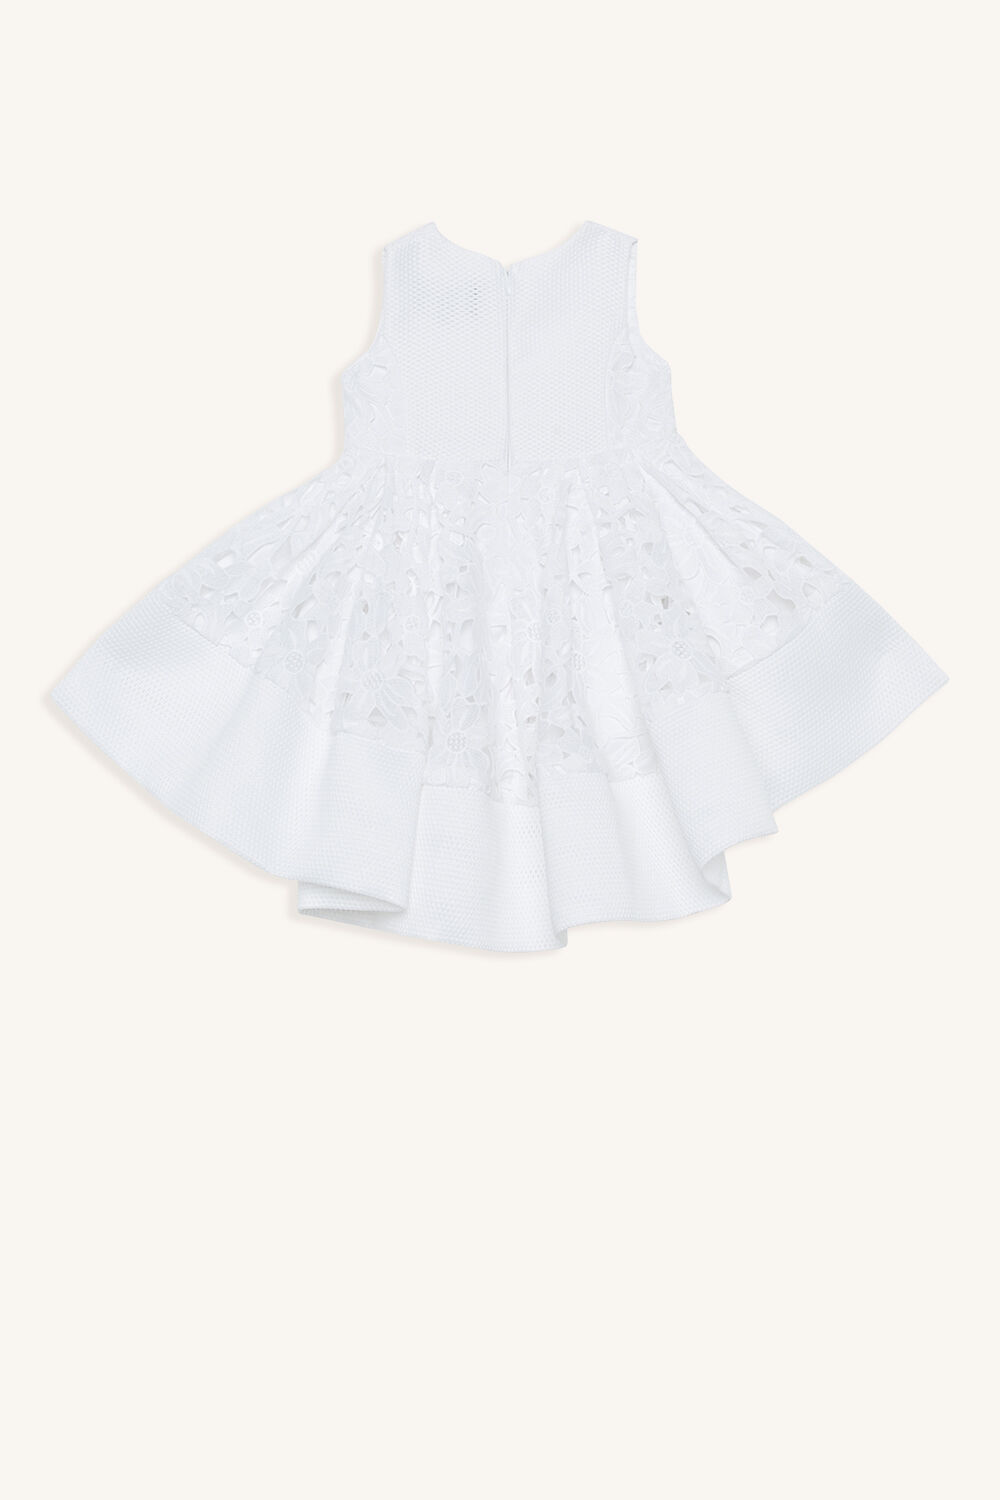 PEARL AVA DRESS in colour CLOUD DANCER